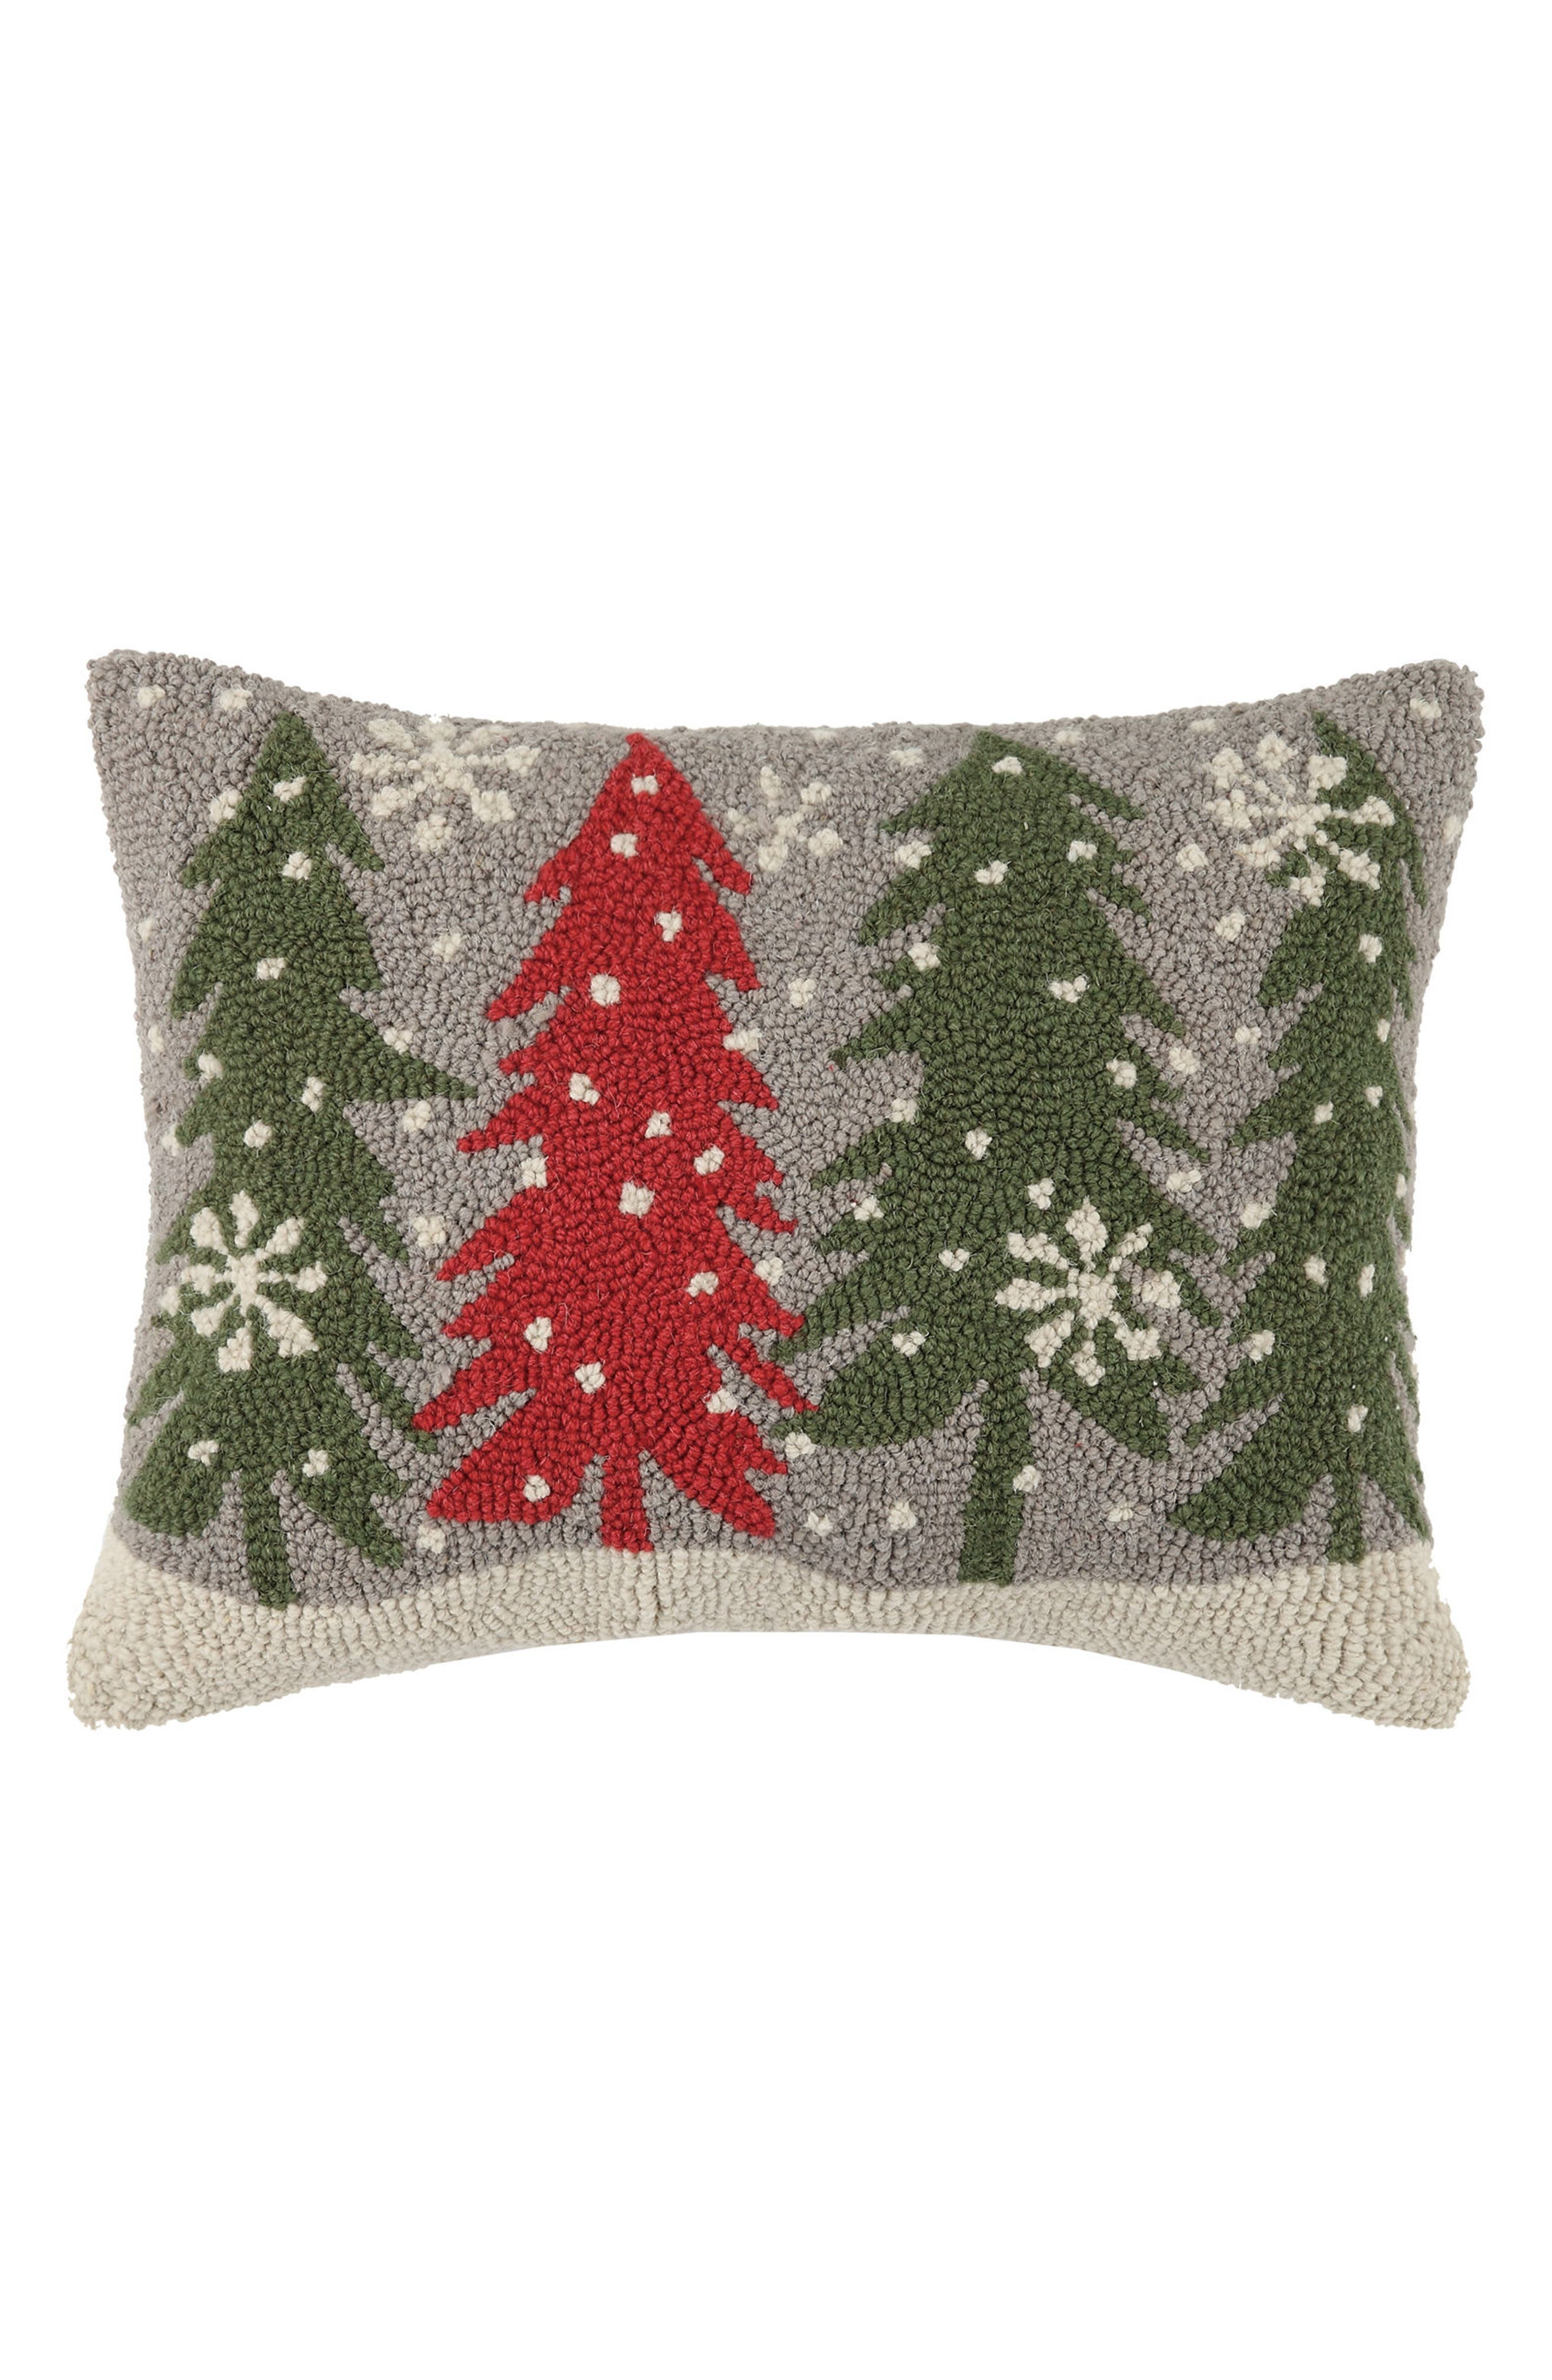 Trees with Snowflakes Hooked Accent Pillow,                             Main thumbnail 1, color,                             020